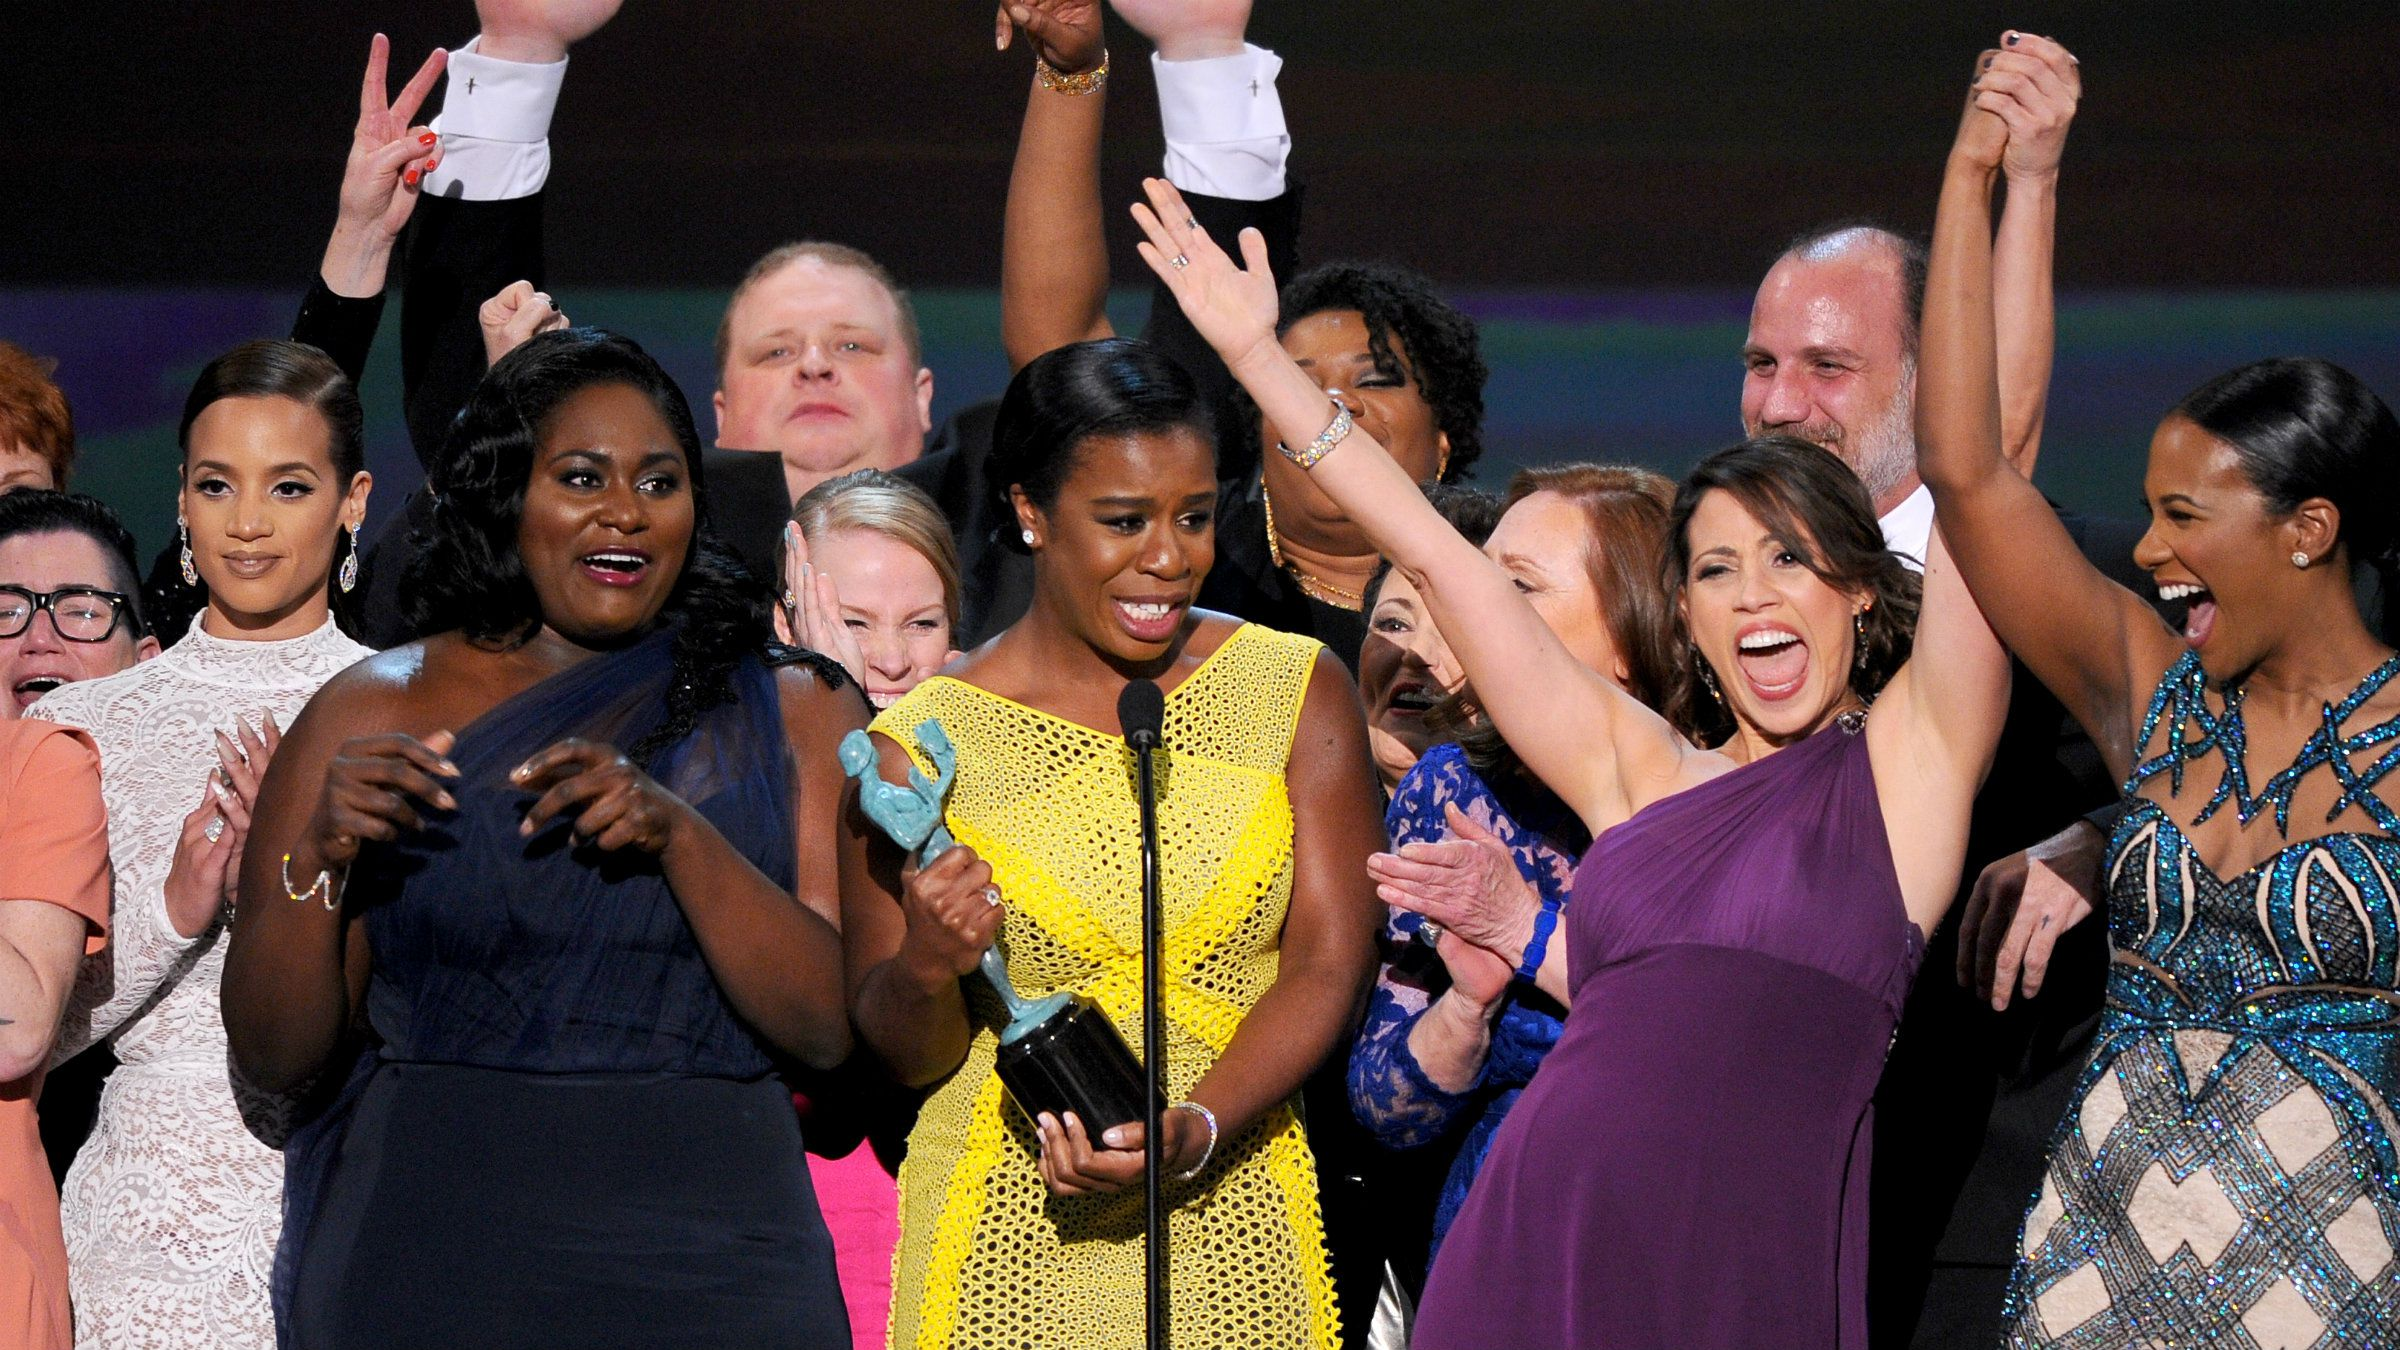 """Uzo Aduba, center, and the cast of """"Orange is the New Black"""" accept the award for outstanding ensemble in a comedy series on stage at the 21st annual Screen Actors Guild Awards at the Shrine Auditorium on Sunday, Jan. 25, 2015, in Los Angeles."""